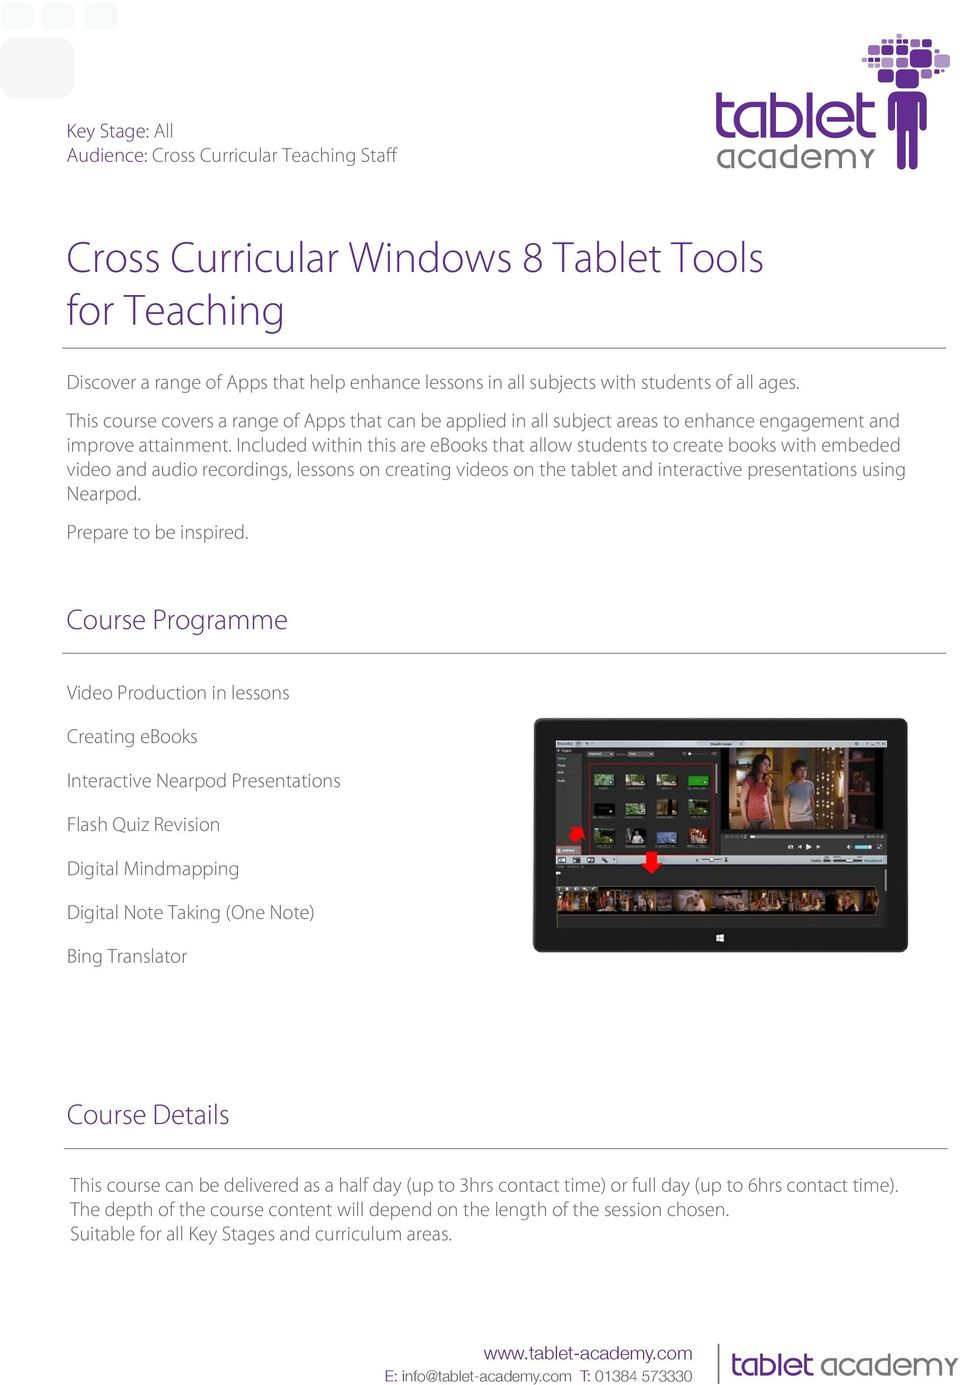 Included within this are ebooks that allow students to create books with embeded video and audio recordings, lessons on creating videos on the tablet and interactive